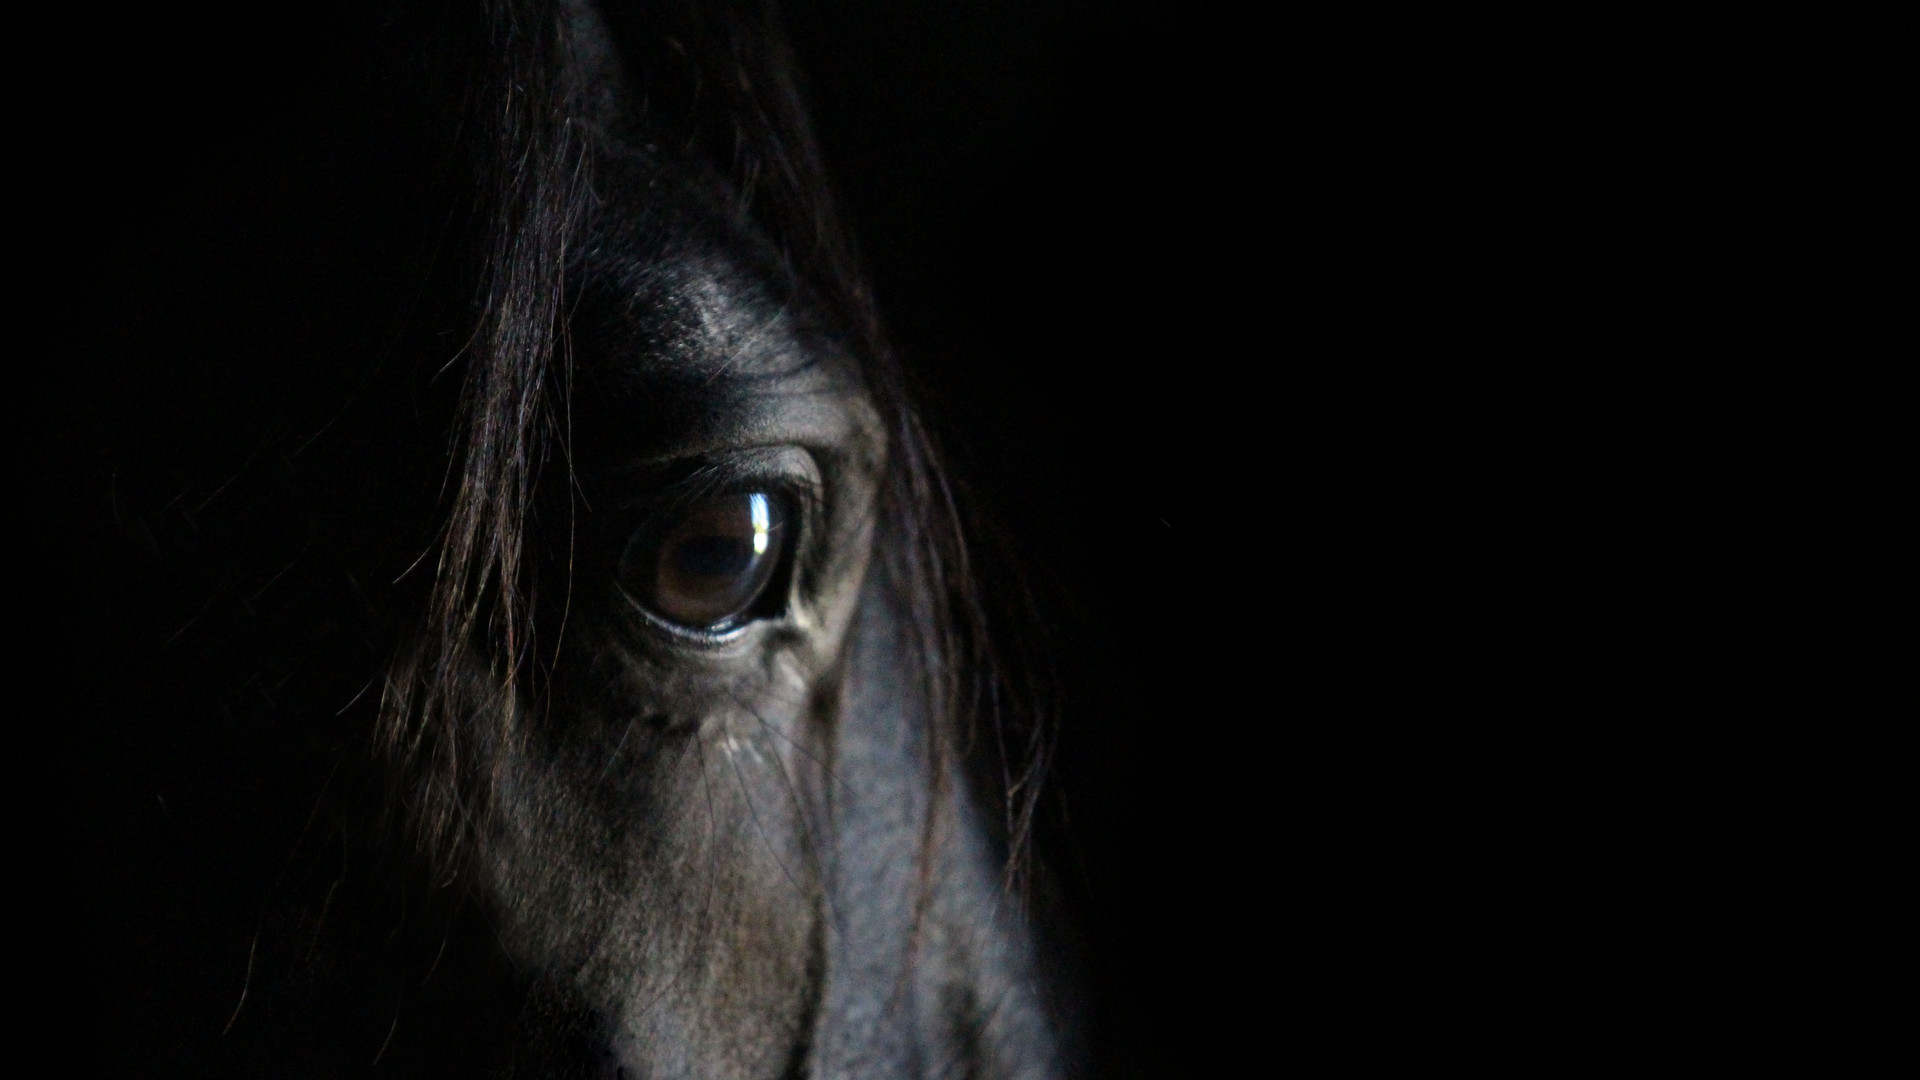 Thoughtful horse eye portrait..jpg